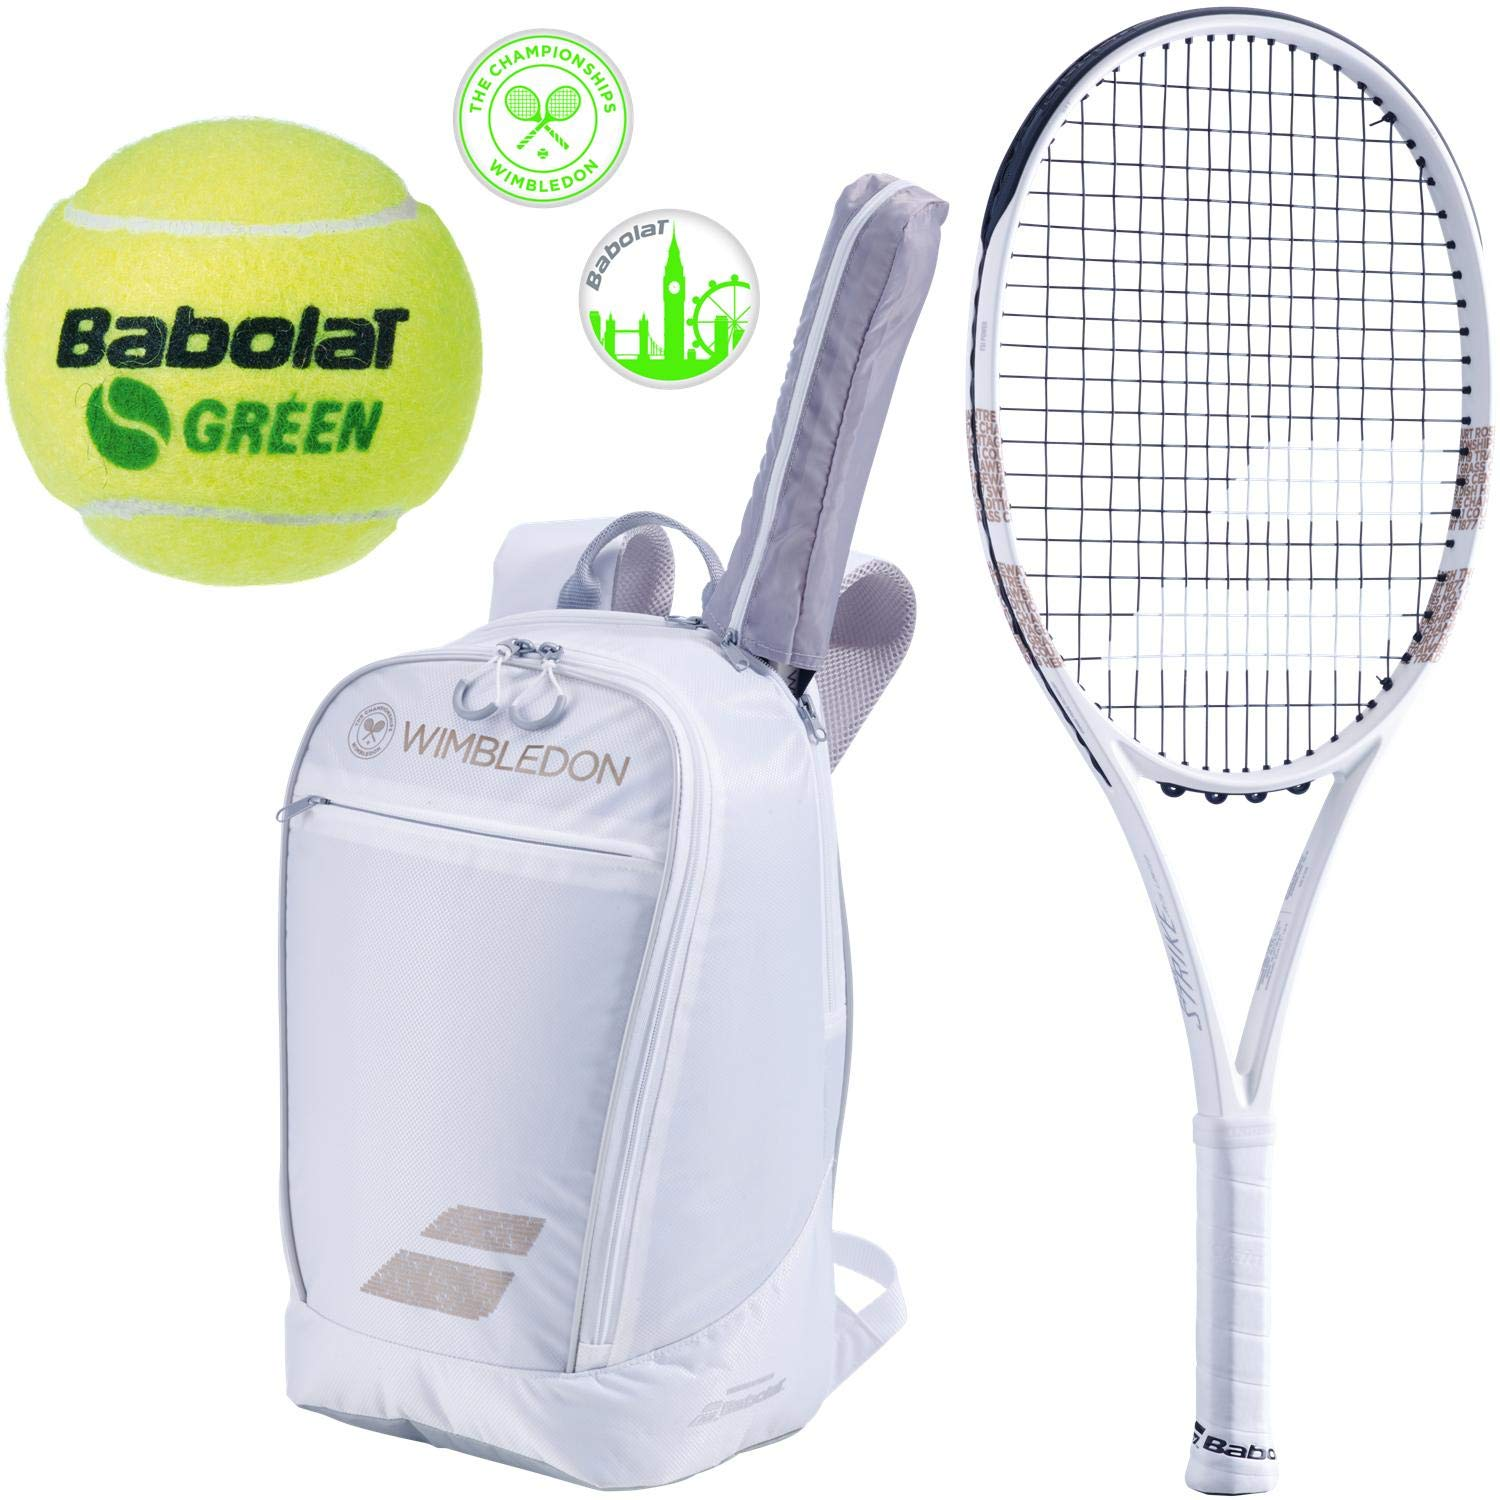 Babolat Wimbledon Pure Strike 26'' Junior Tennis Racquet (4 1/8'' Grip) Bundled with a Wimbledon Club Backpack, a Can of Green Play & Stay Balls and a Set of Wimbledon Dampeners by Babolat (Image #1)